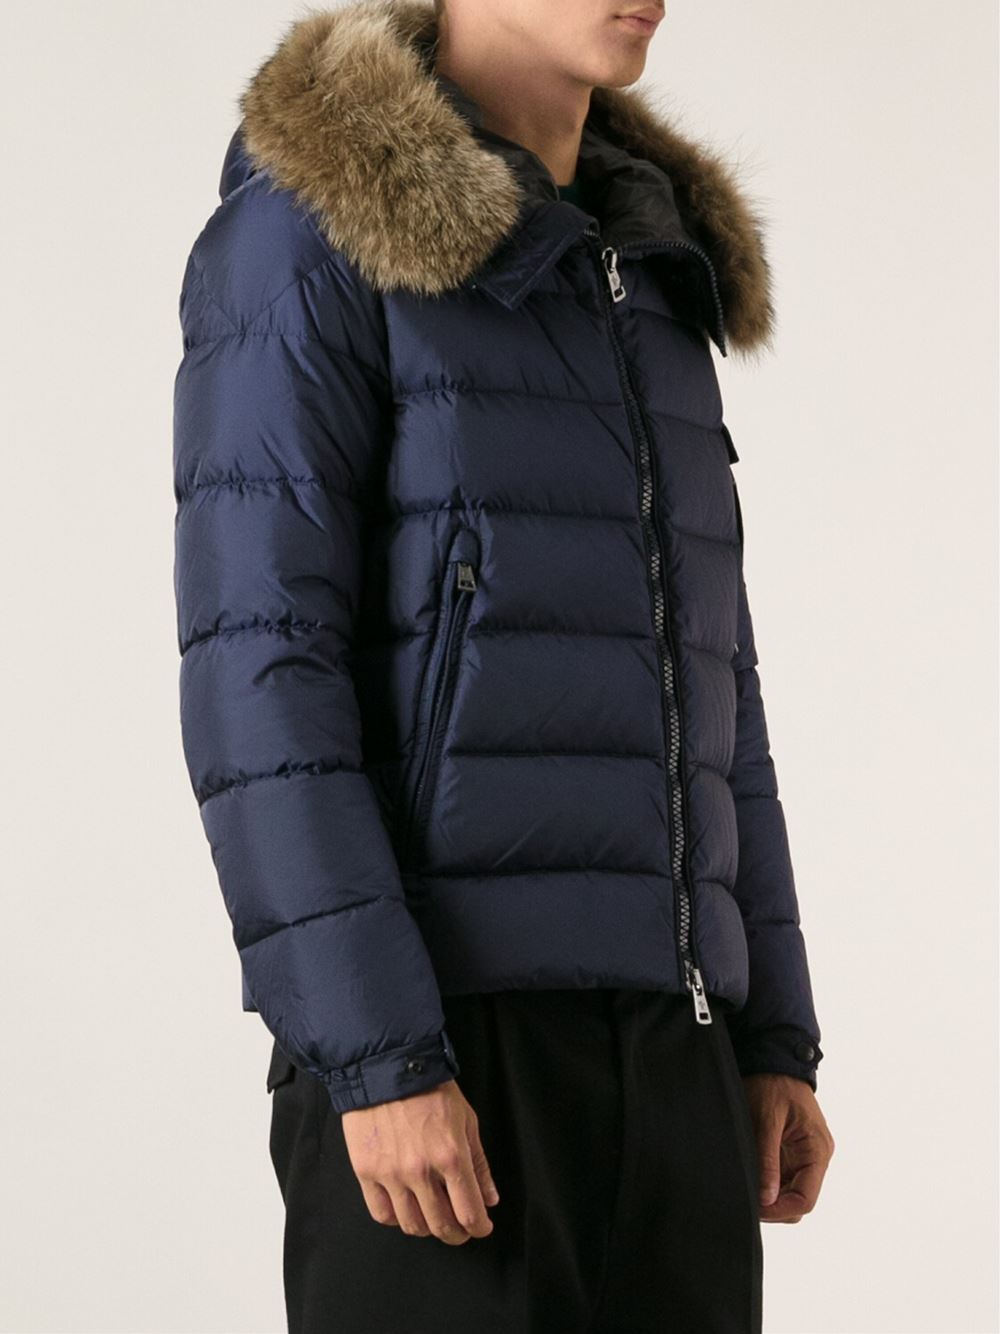 Moncler Dylan Padded Jacket In Blue For Men Lyst